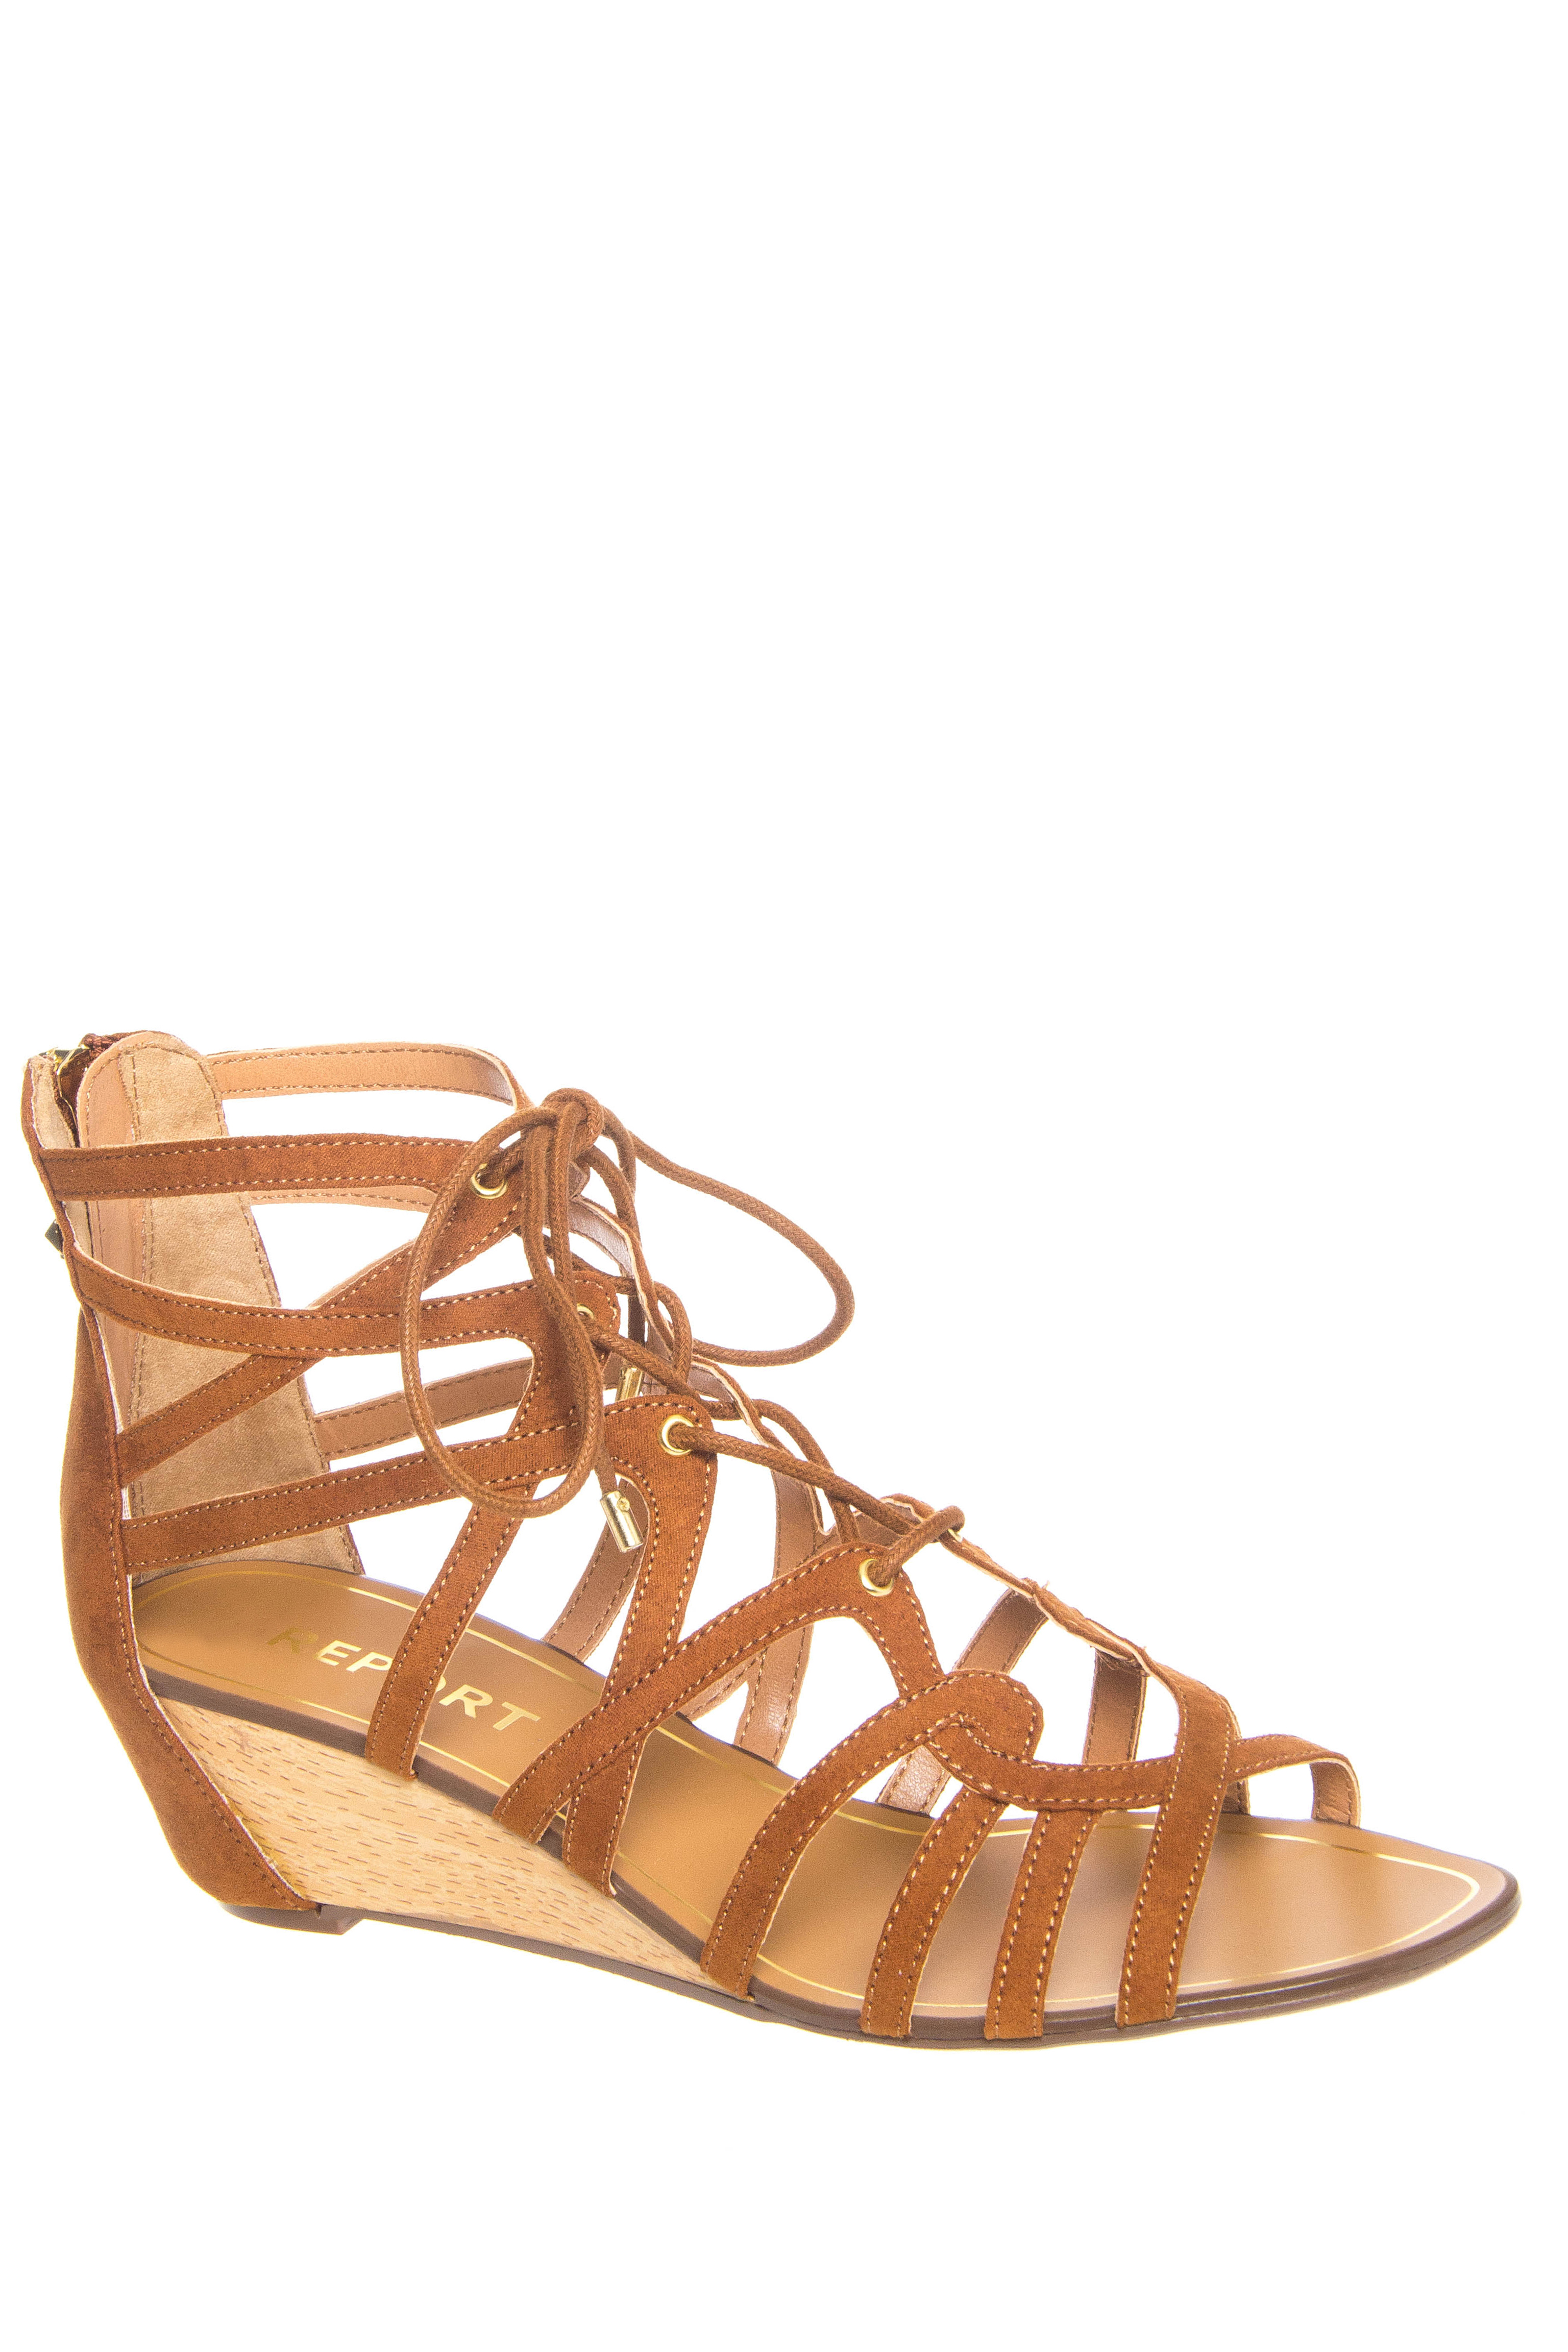 Report Mindiee Mid Wedge Gladiator Sandals